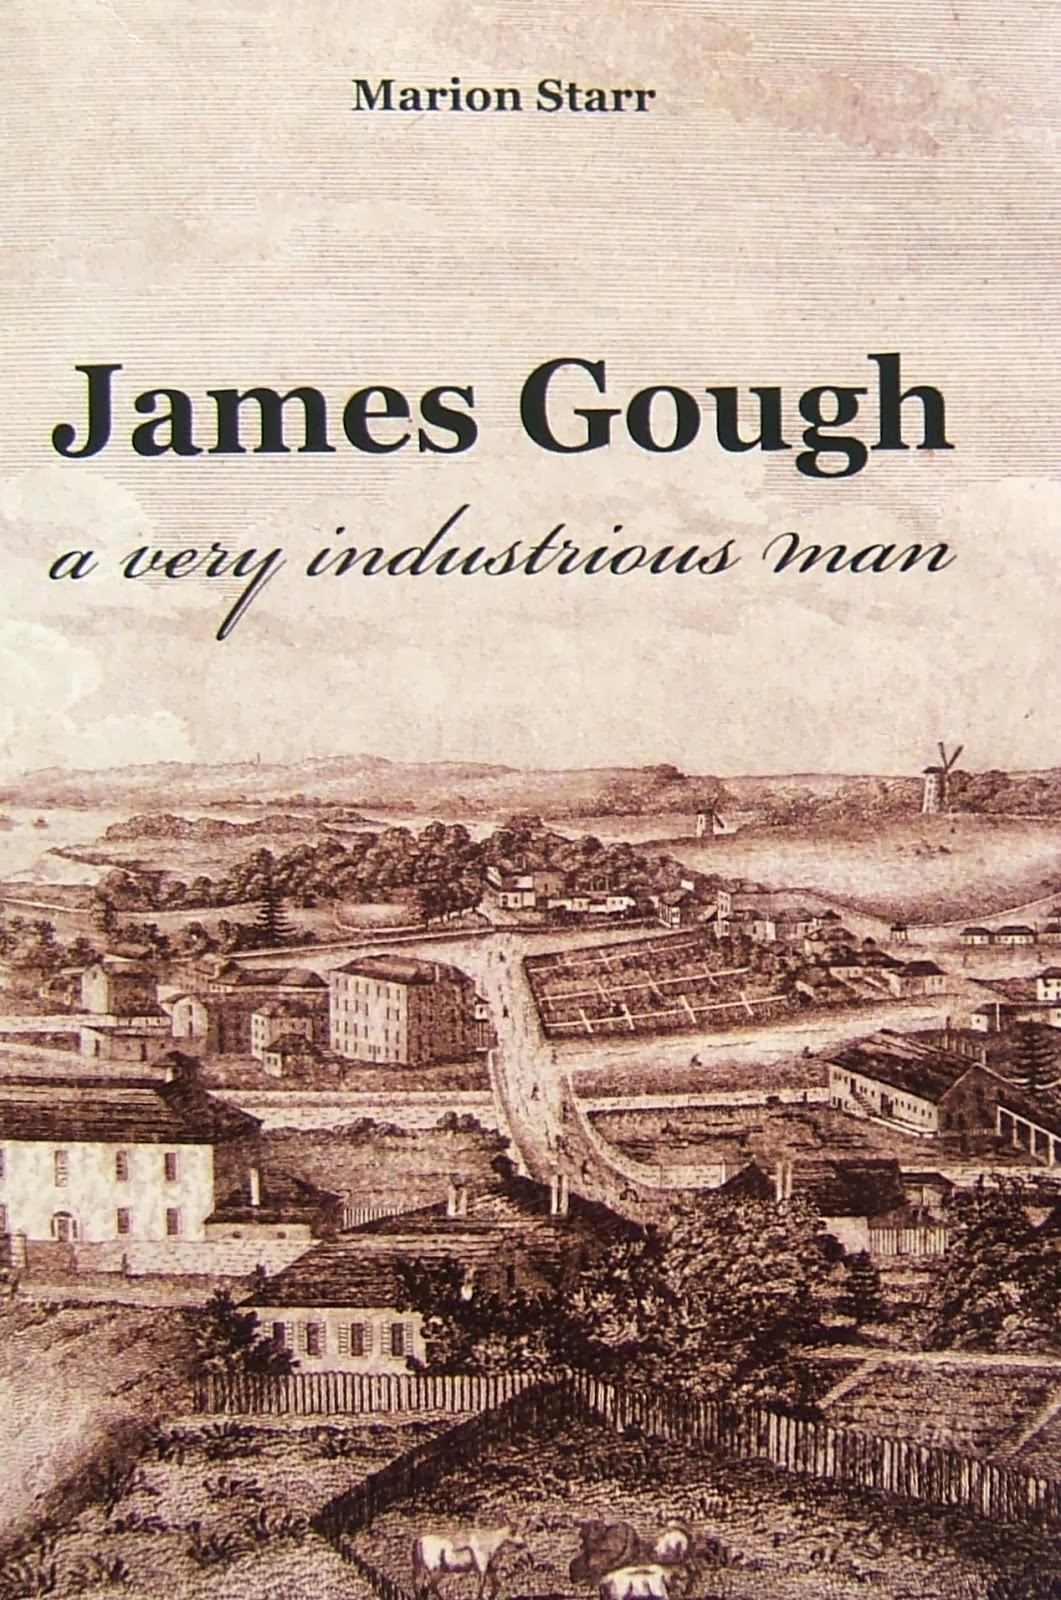 SPECIAL OFFER James Gough - the book Click on image for details